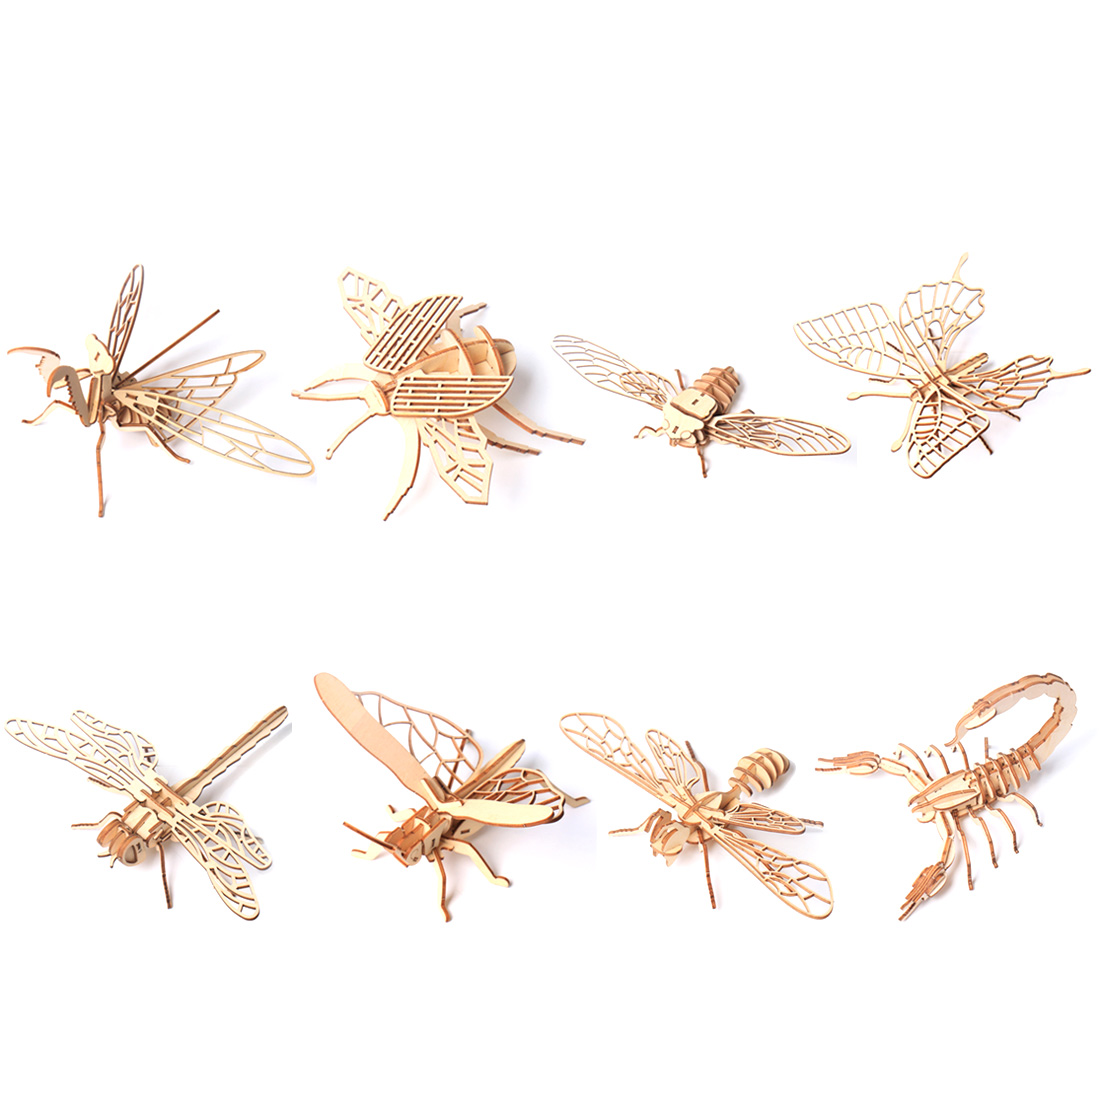 3D DIY Wooden Puzzle Toy Simulation Insect Assembly Puzzle Model Toy Butterfly Bee Dragonfly  Grasshopper Mantis Scorpion Cicada